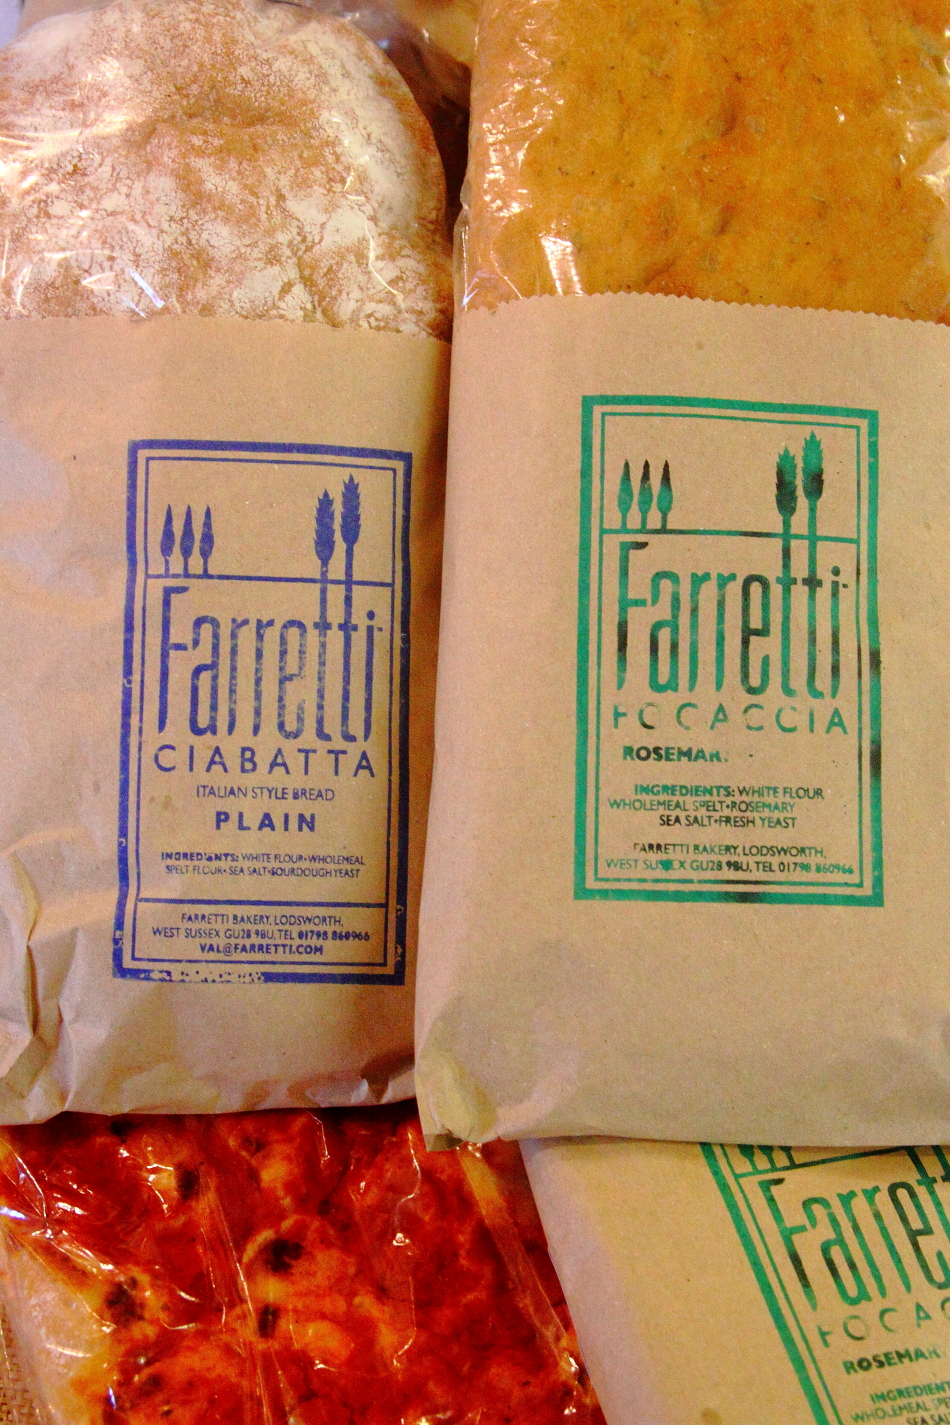 Italian Breads from the Farretti Bakery in Lodsworth, West Sussex